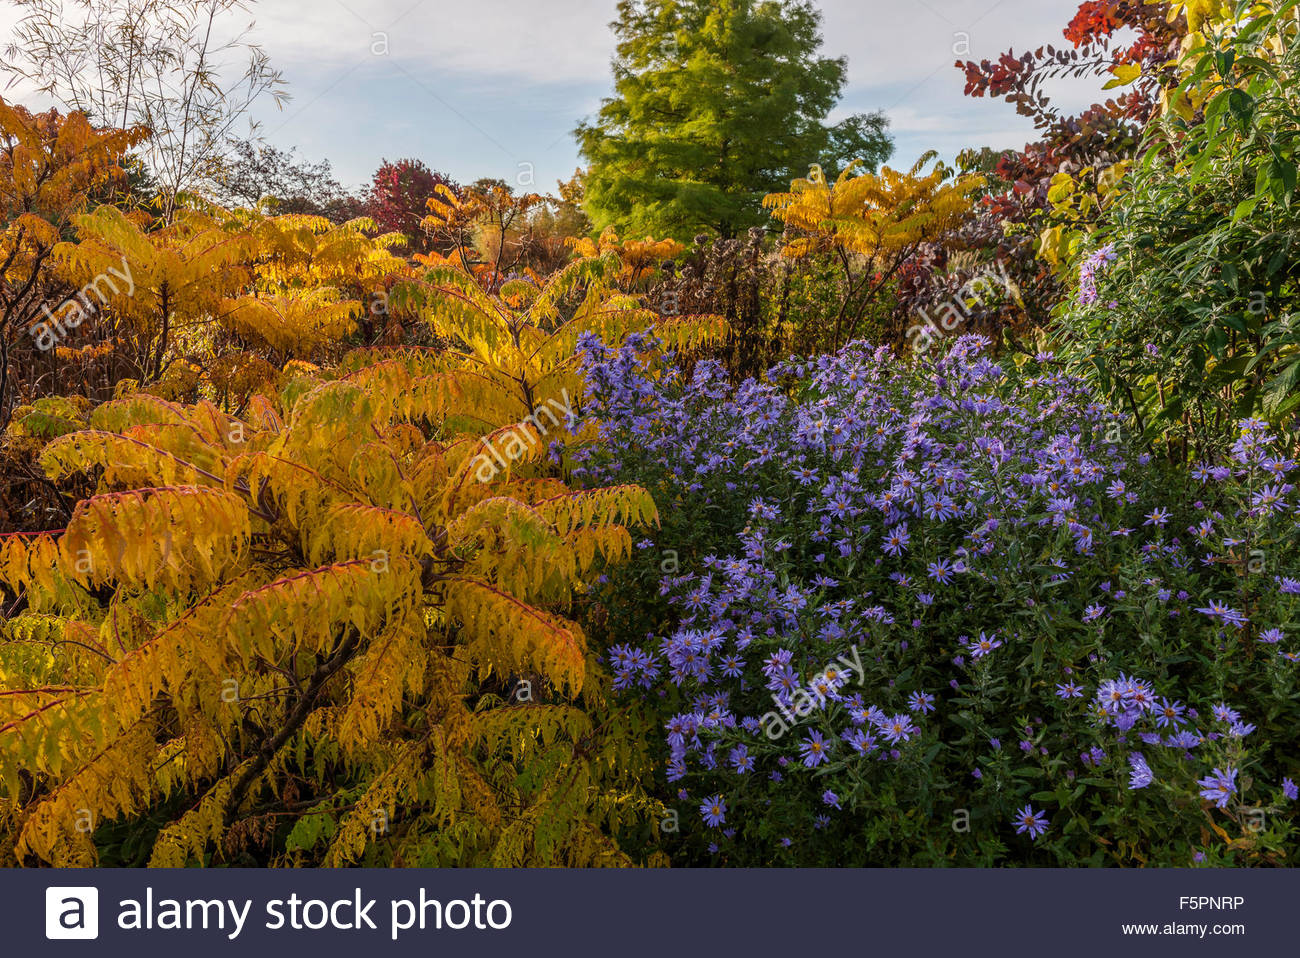 Rhus typhina 'Dissecta' cut-leaved stag's horn sumac - Stock Image